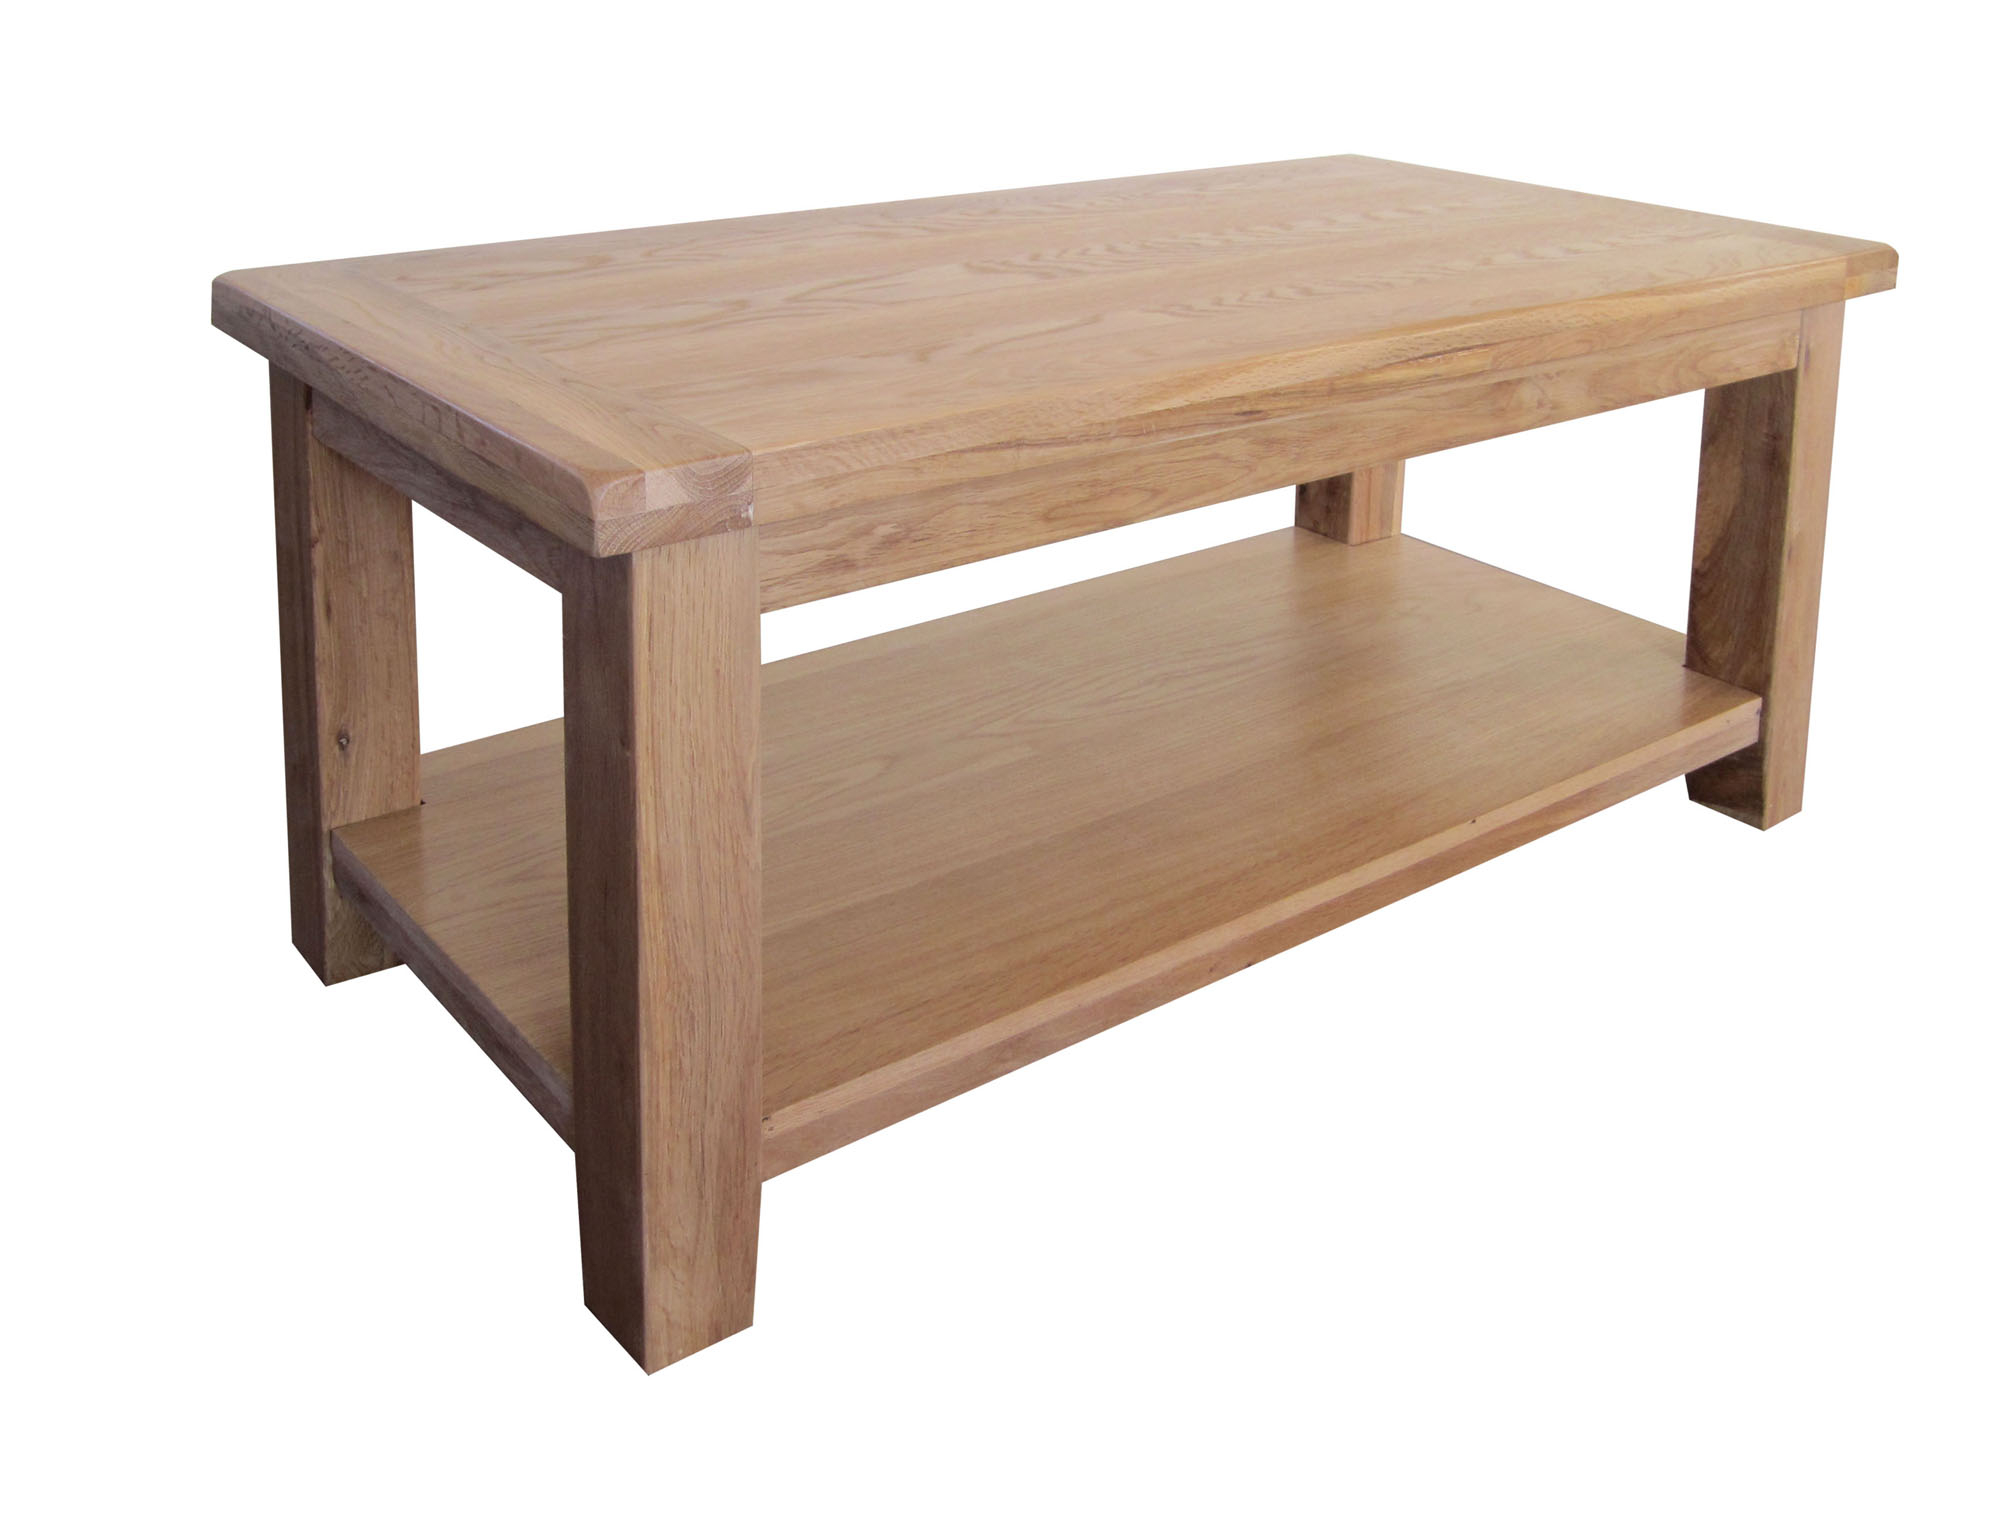 Barcelona Oak Coffee Table Sweet Dream Makers within dimensions 2000 X 1526